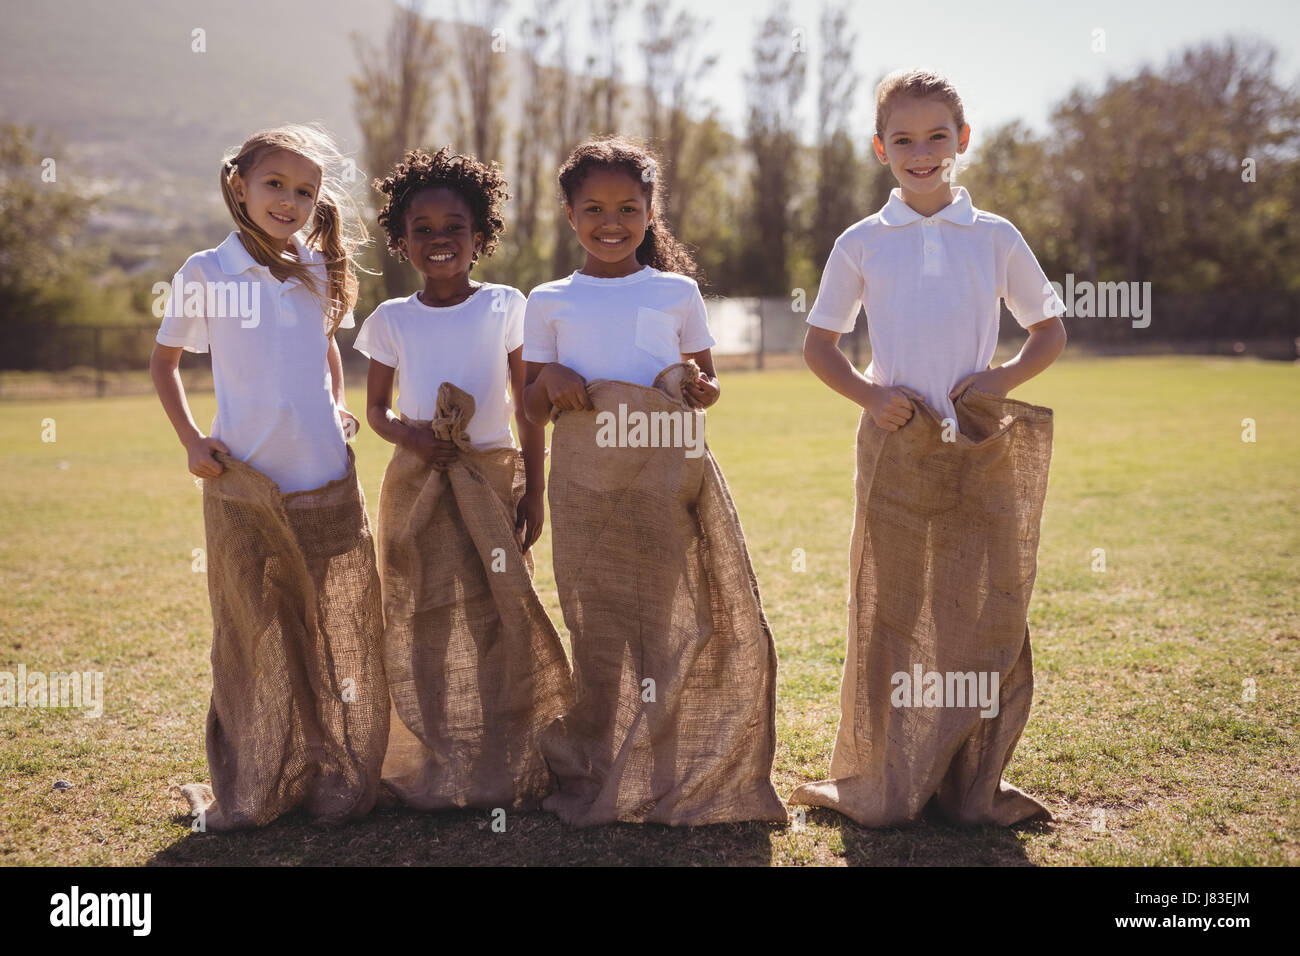 Portrait of happy schoolgirls standing in sack during race on a sunny day - Stock Image